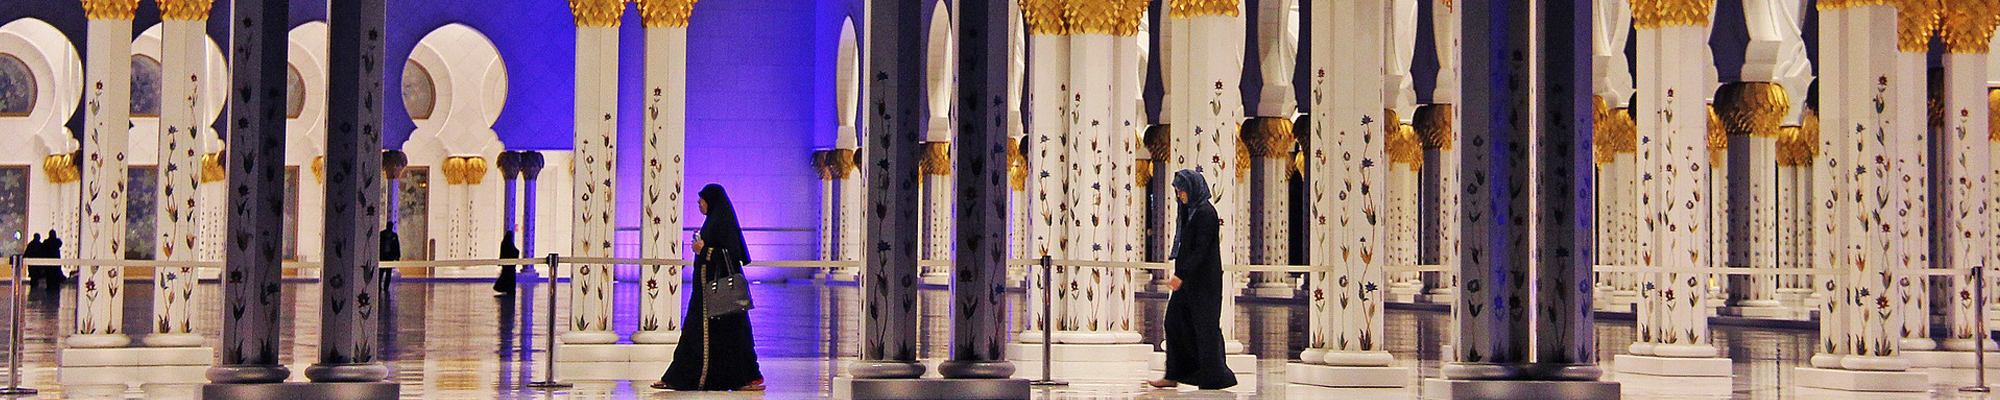 night prayer in mosque